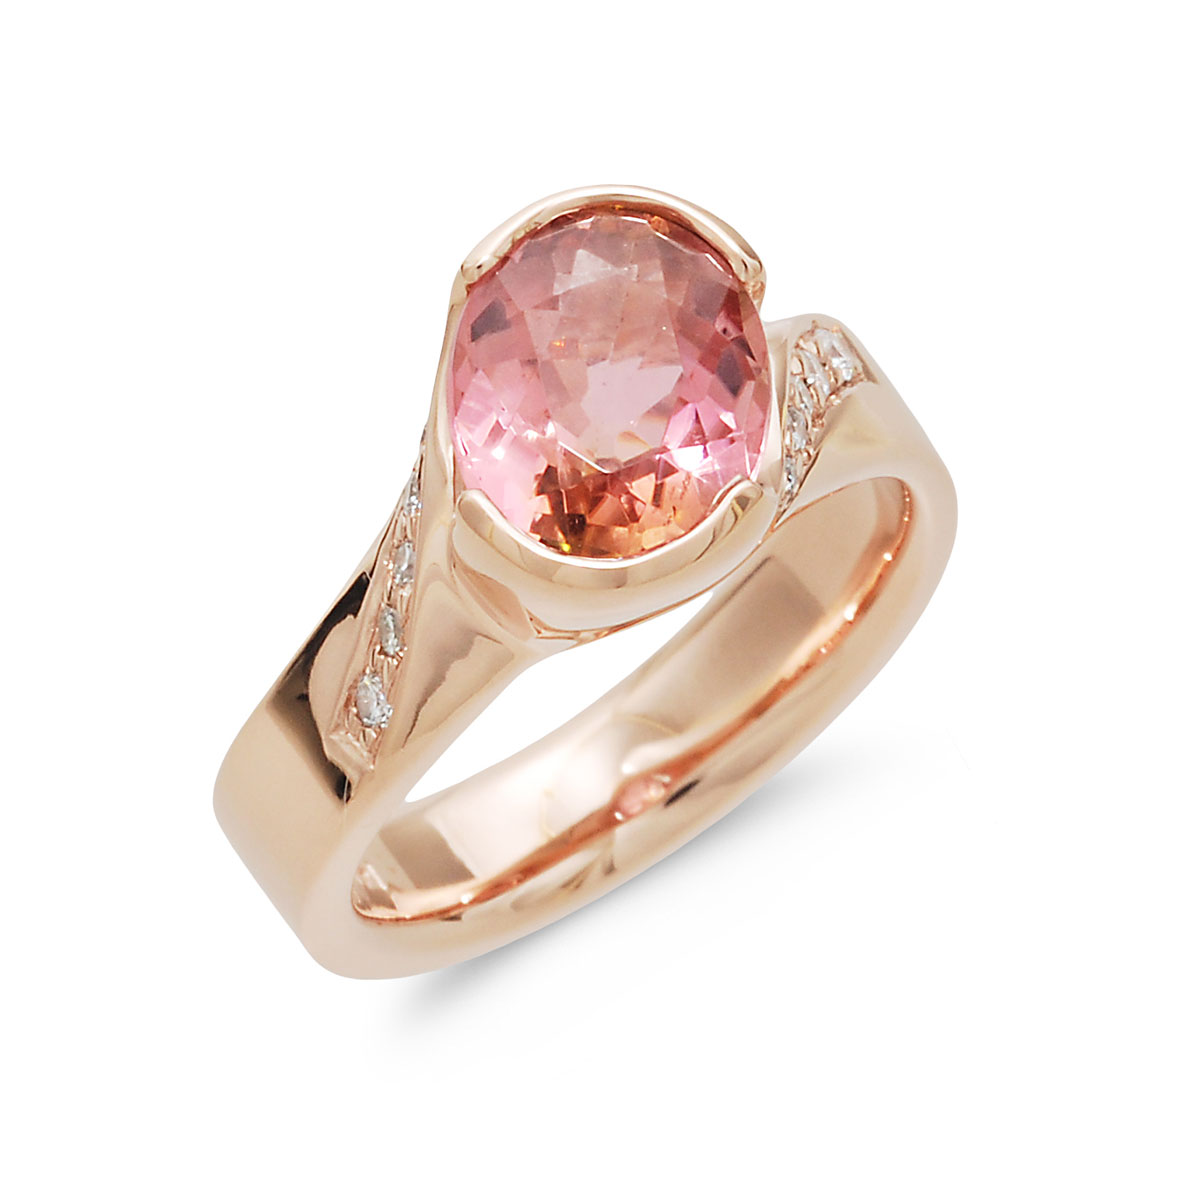 WR0210 Oval Pink Tourmaline Ring